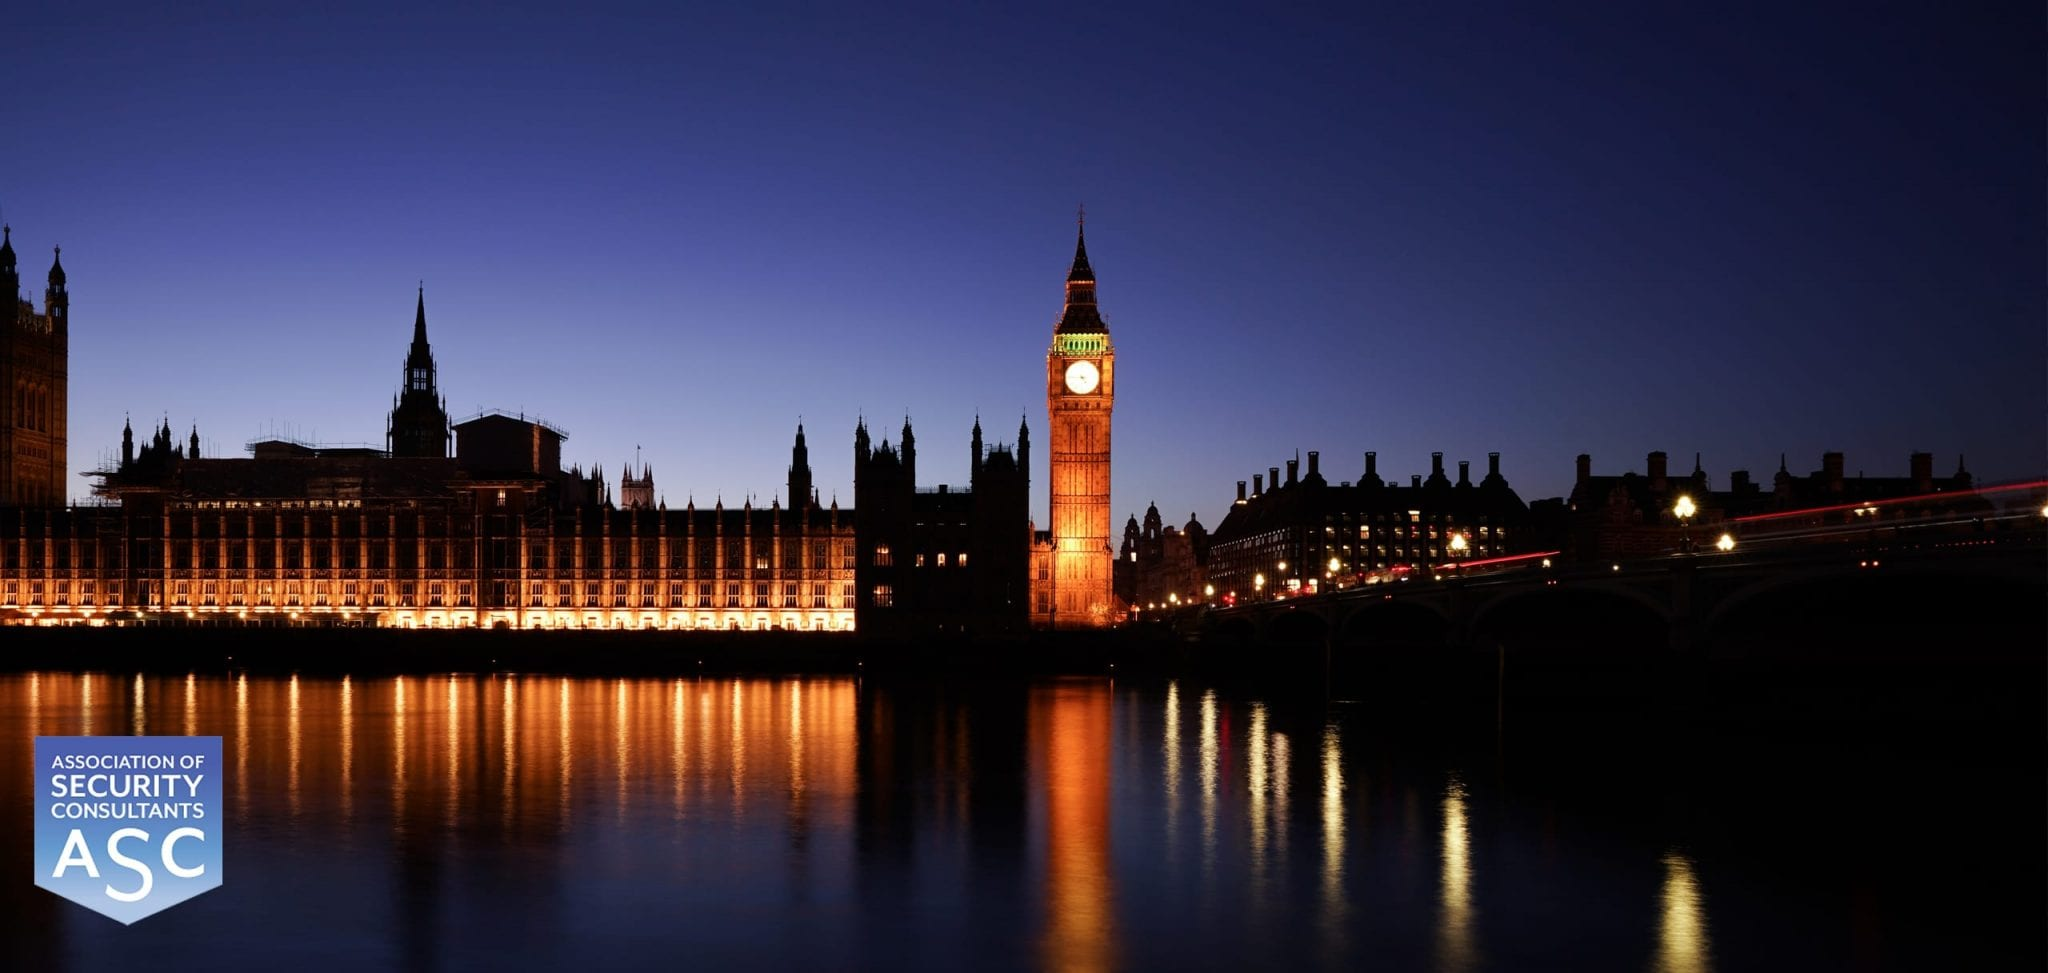 Houses of Parliament and Big Ben from across the river Thames at night.